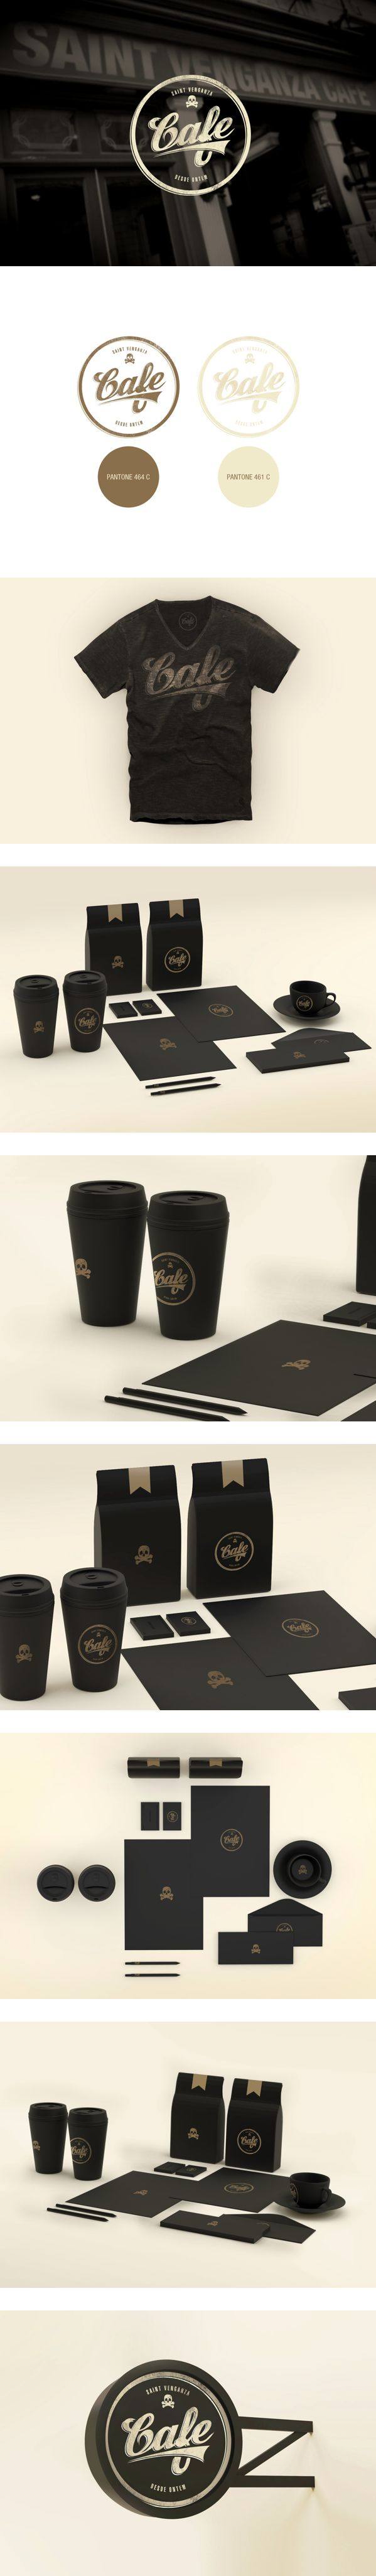 Just plain old Old Cafe #identity #packaging #branding #marketing PD